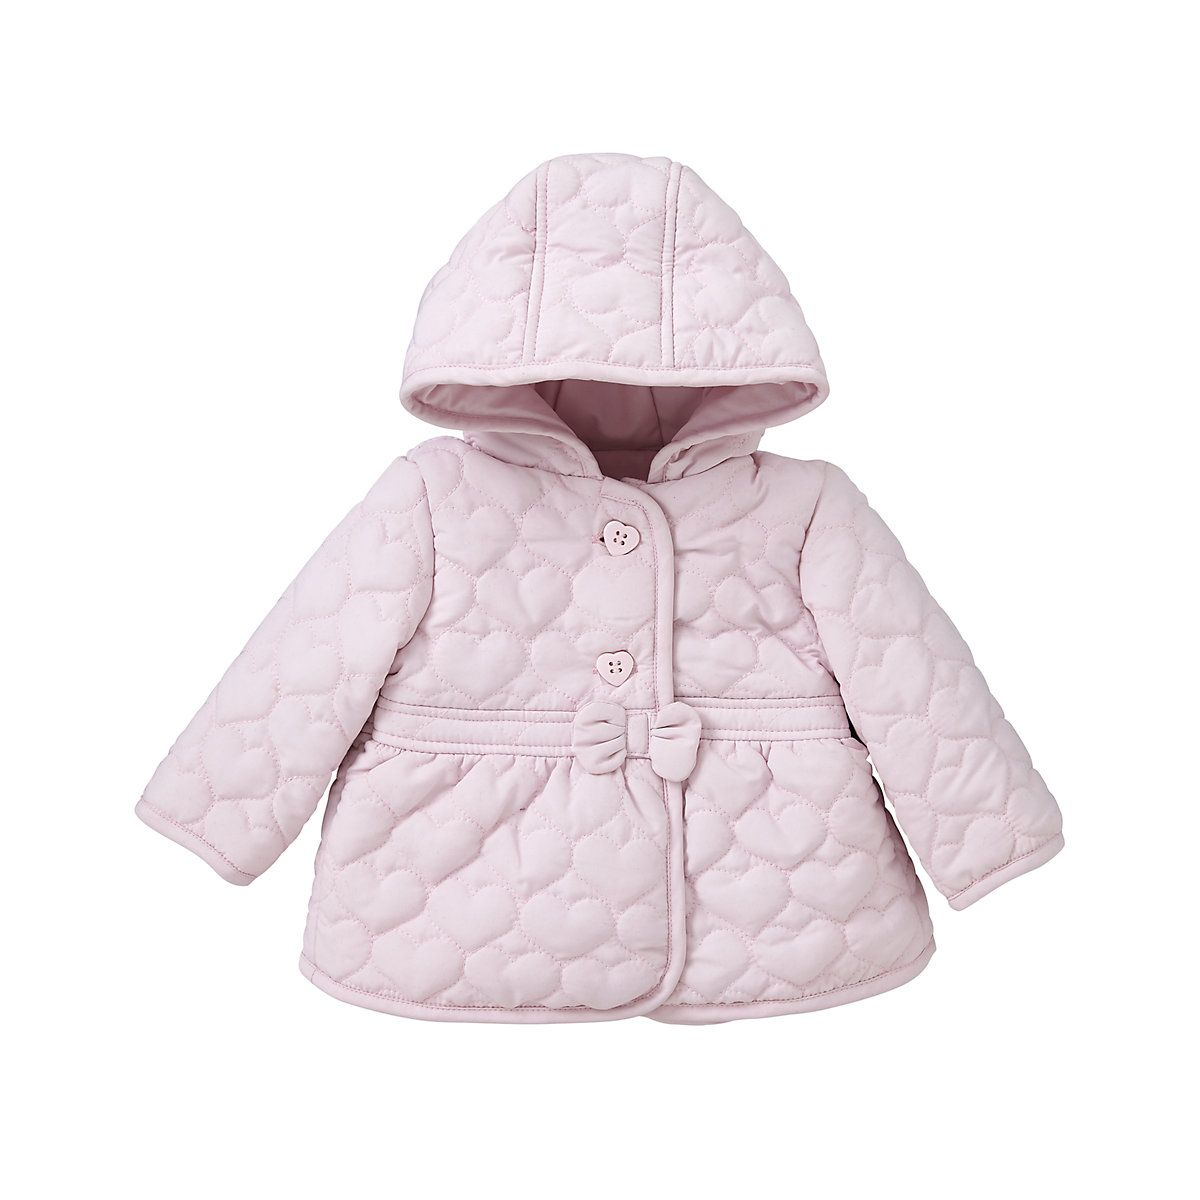 Mothercare Quilted Coat - coats & jackets - Mothercare | ropa ... : quilted baby coat - Adamdwight.com